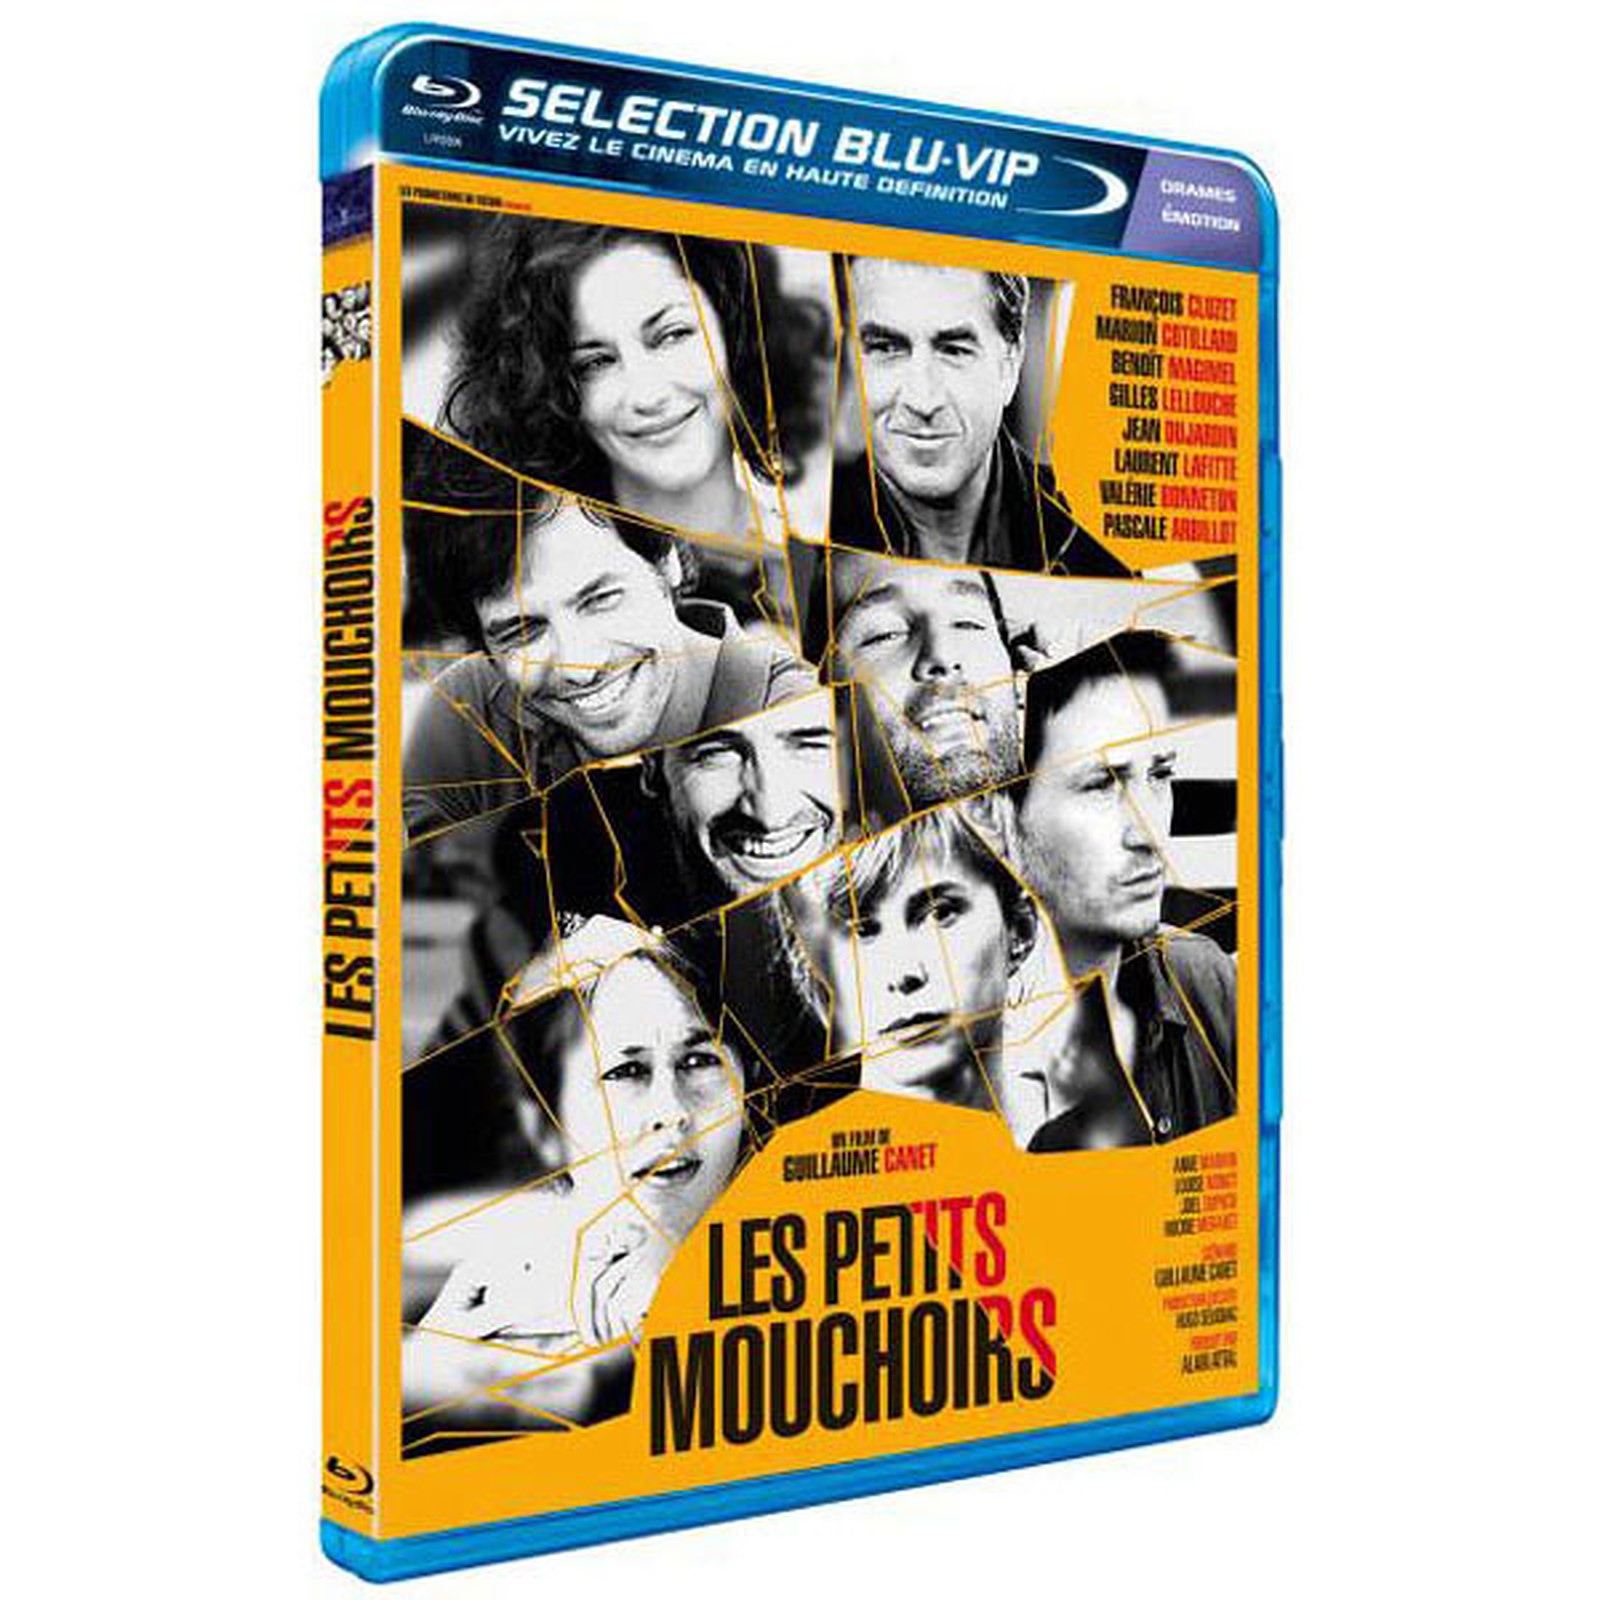 Les petits mouchoirs (édition Blu-ray)